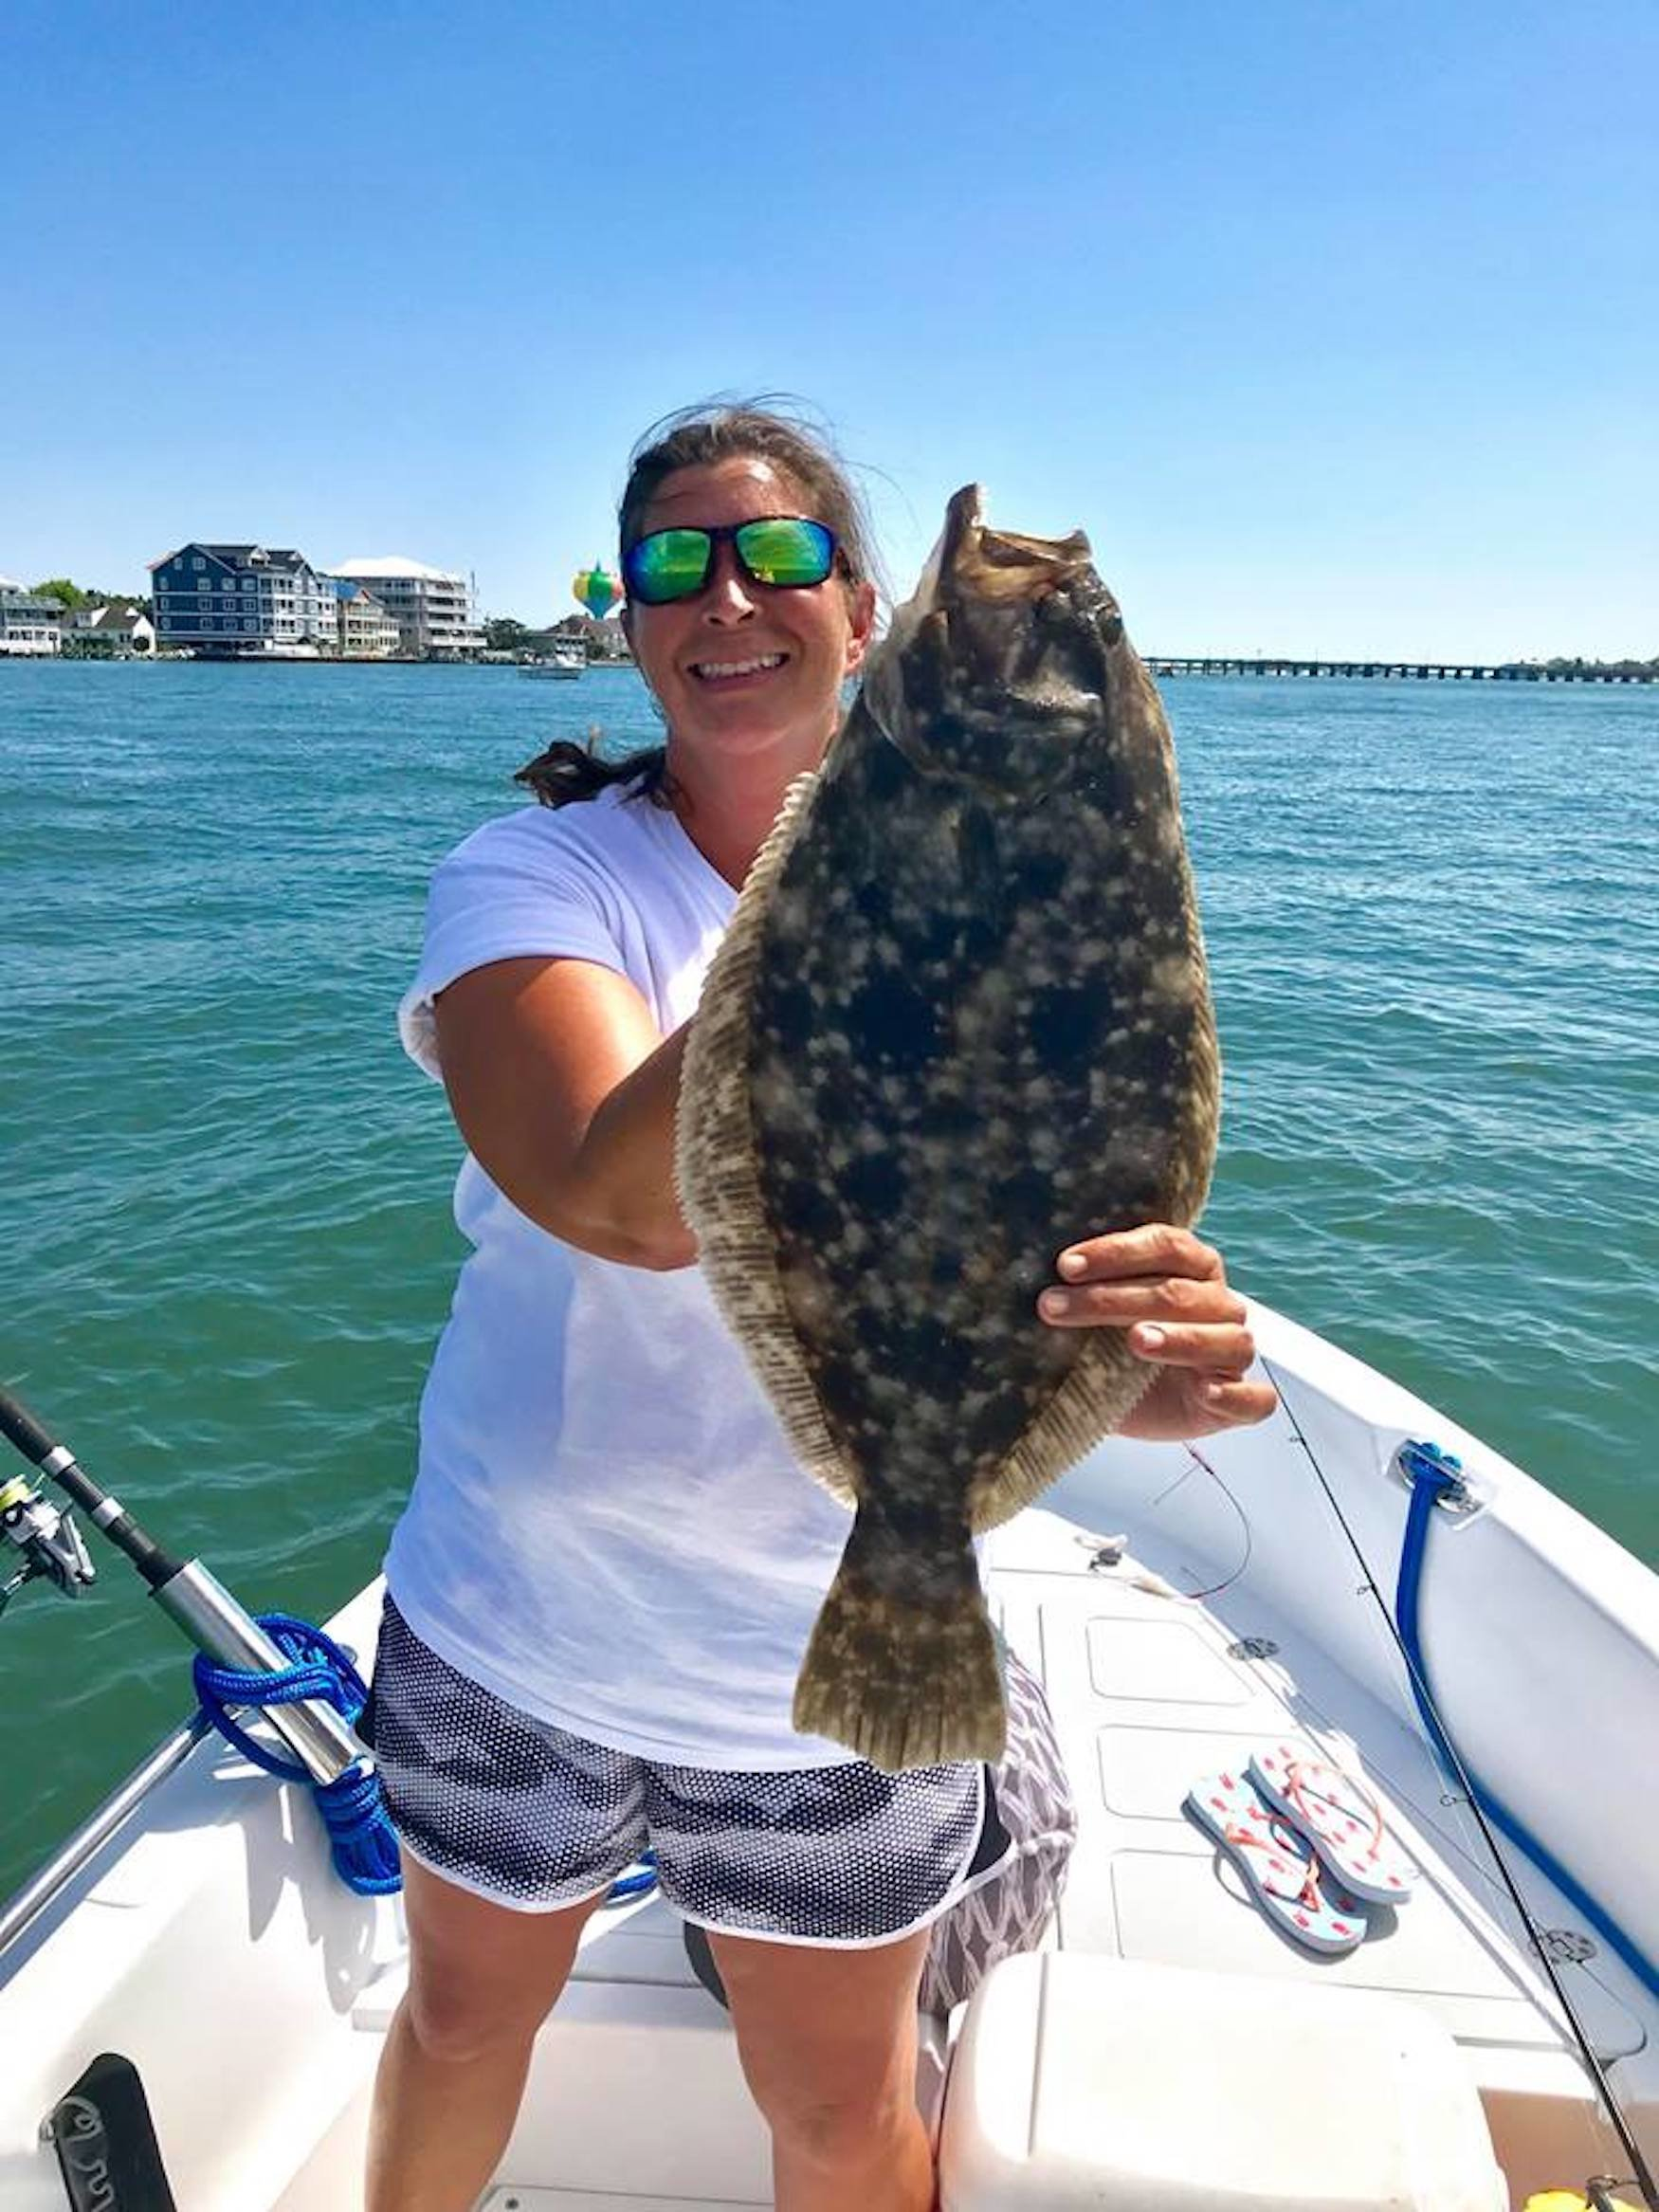 Flounder Are Snapping Bro!